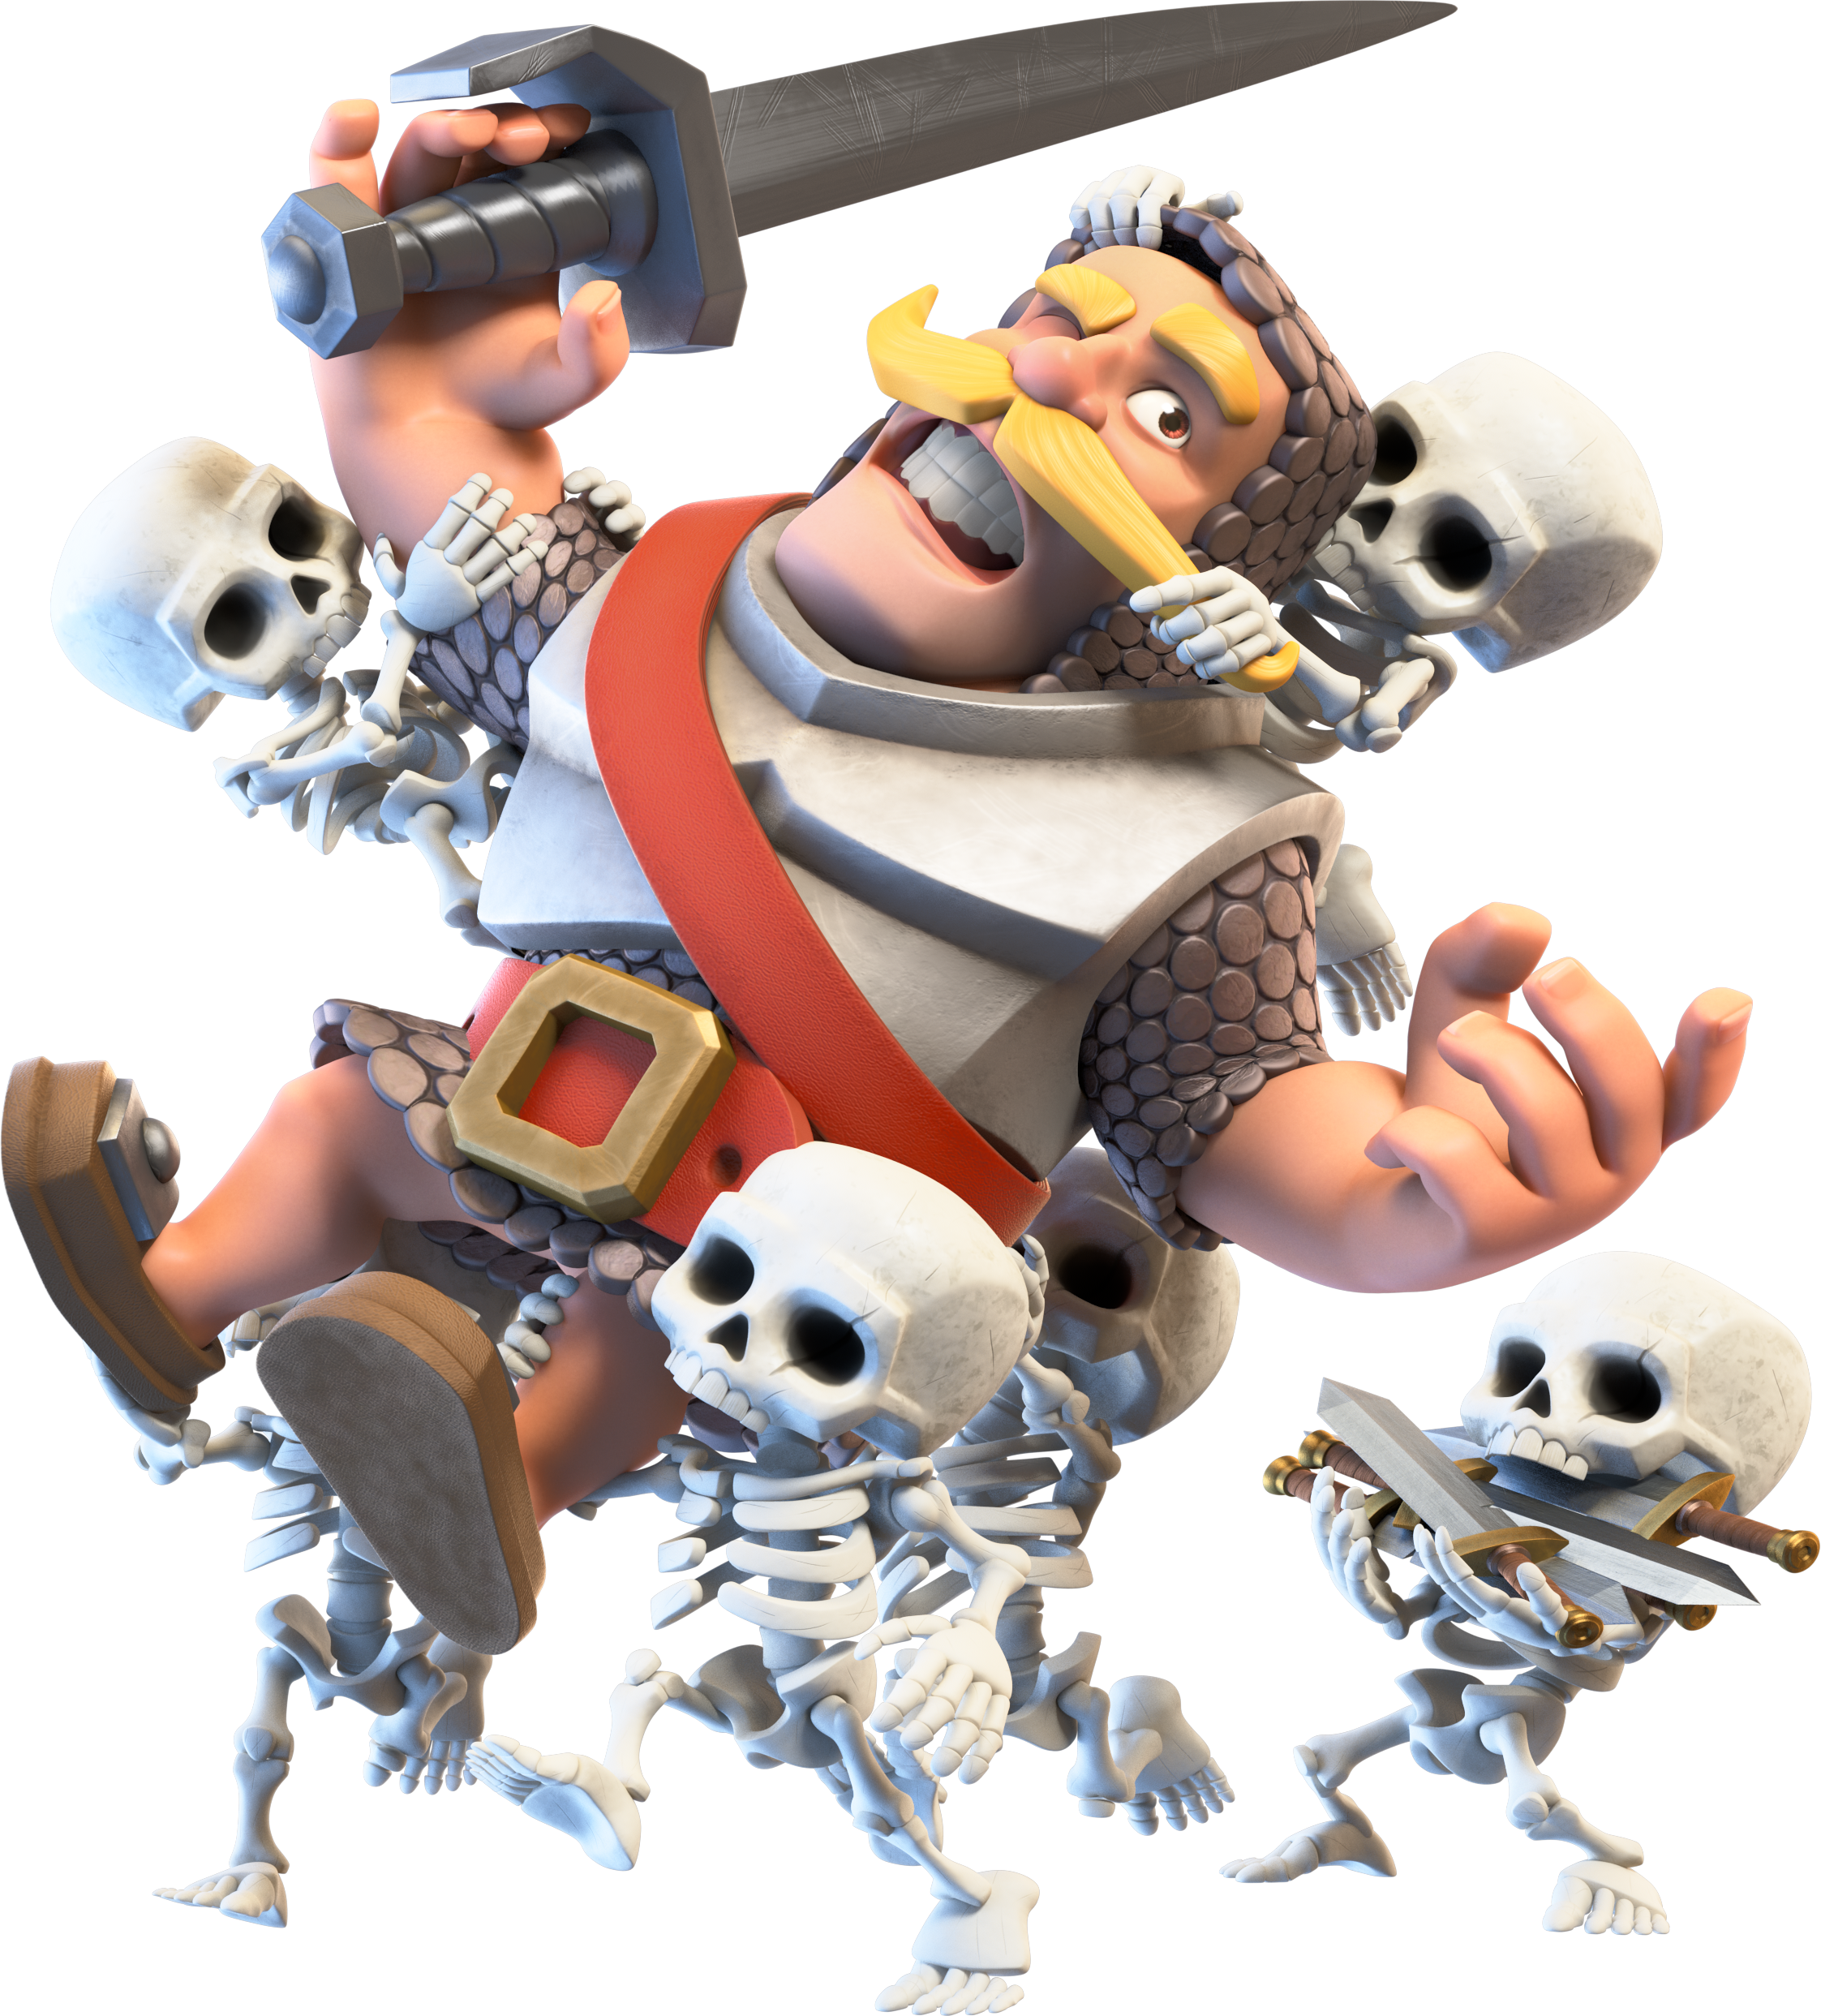 Princess clash royale png. Image knight and skeletons